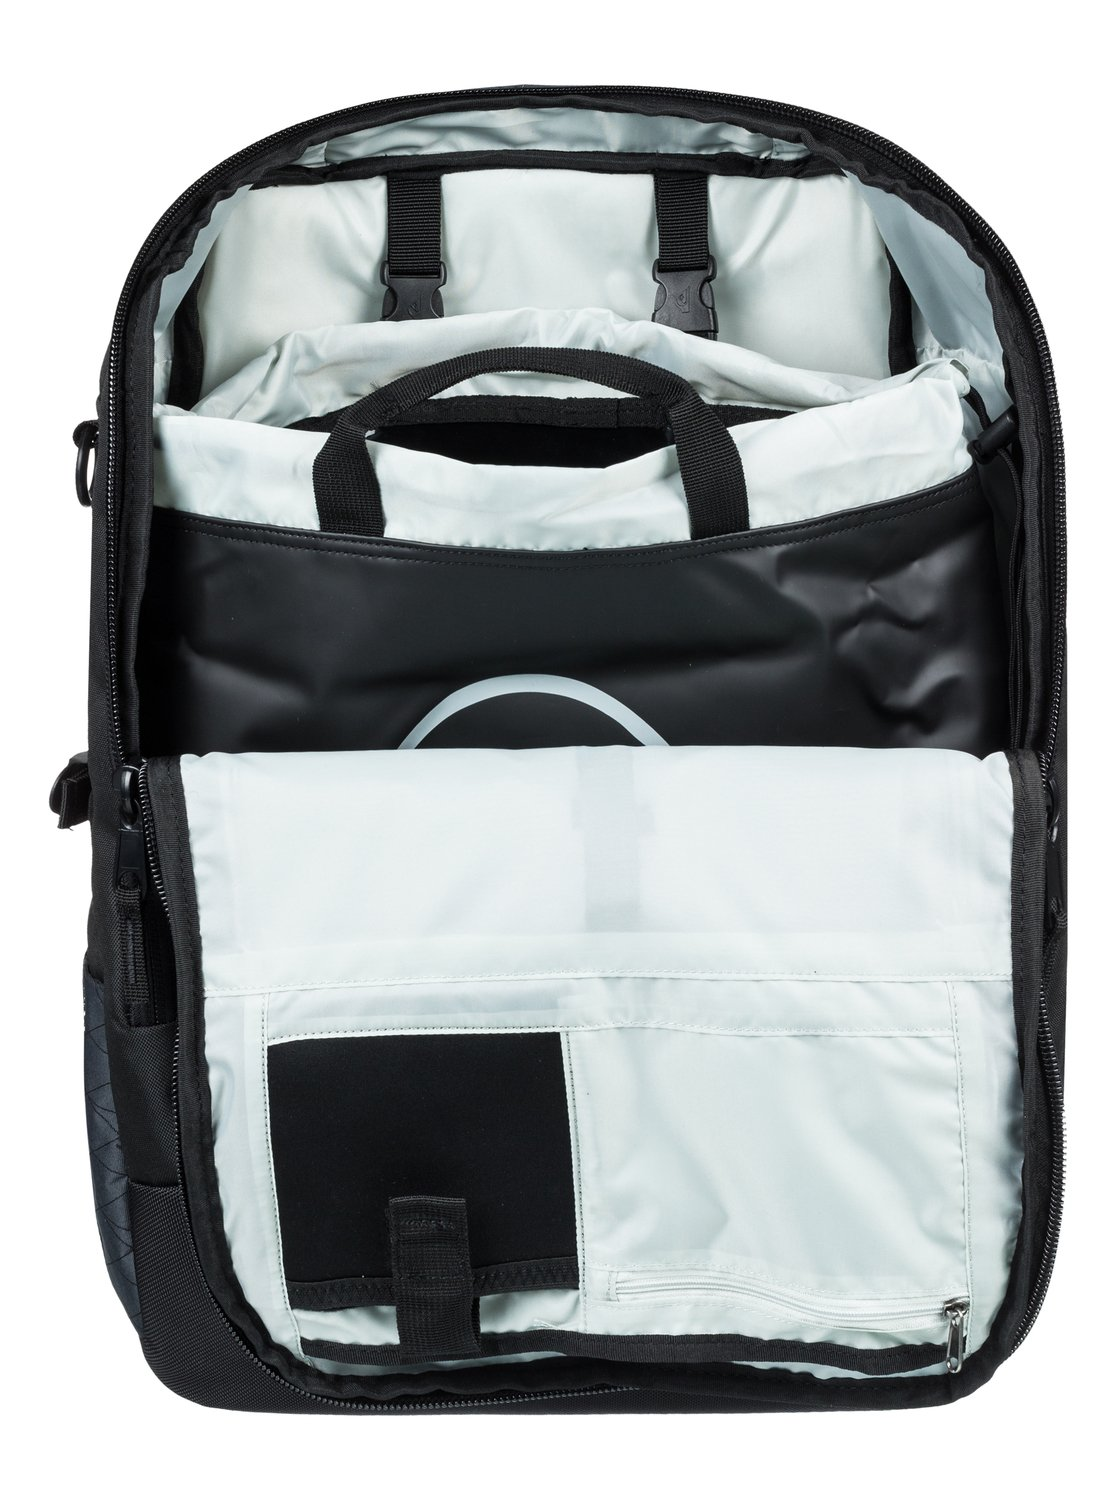 Quiksilver Sac à dos Rambbler 7HlwAUJe2g